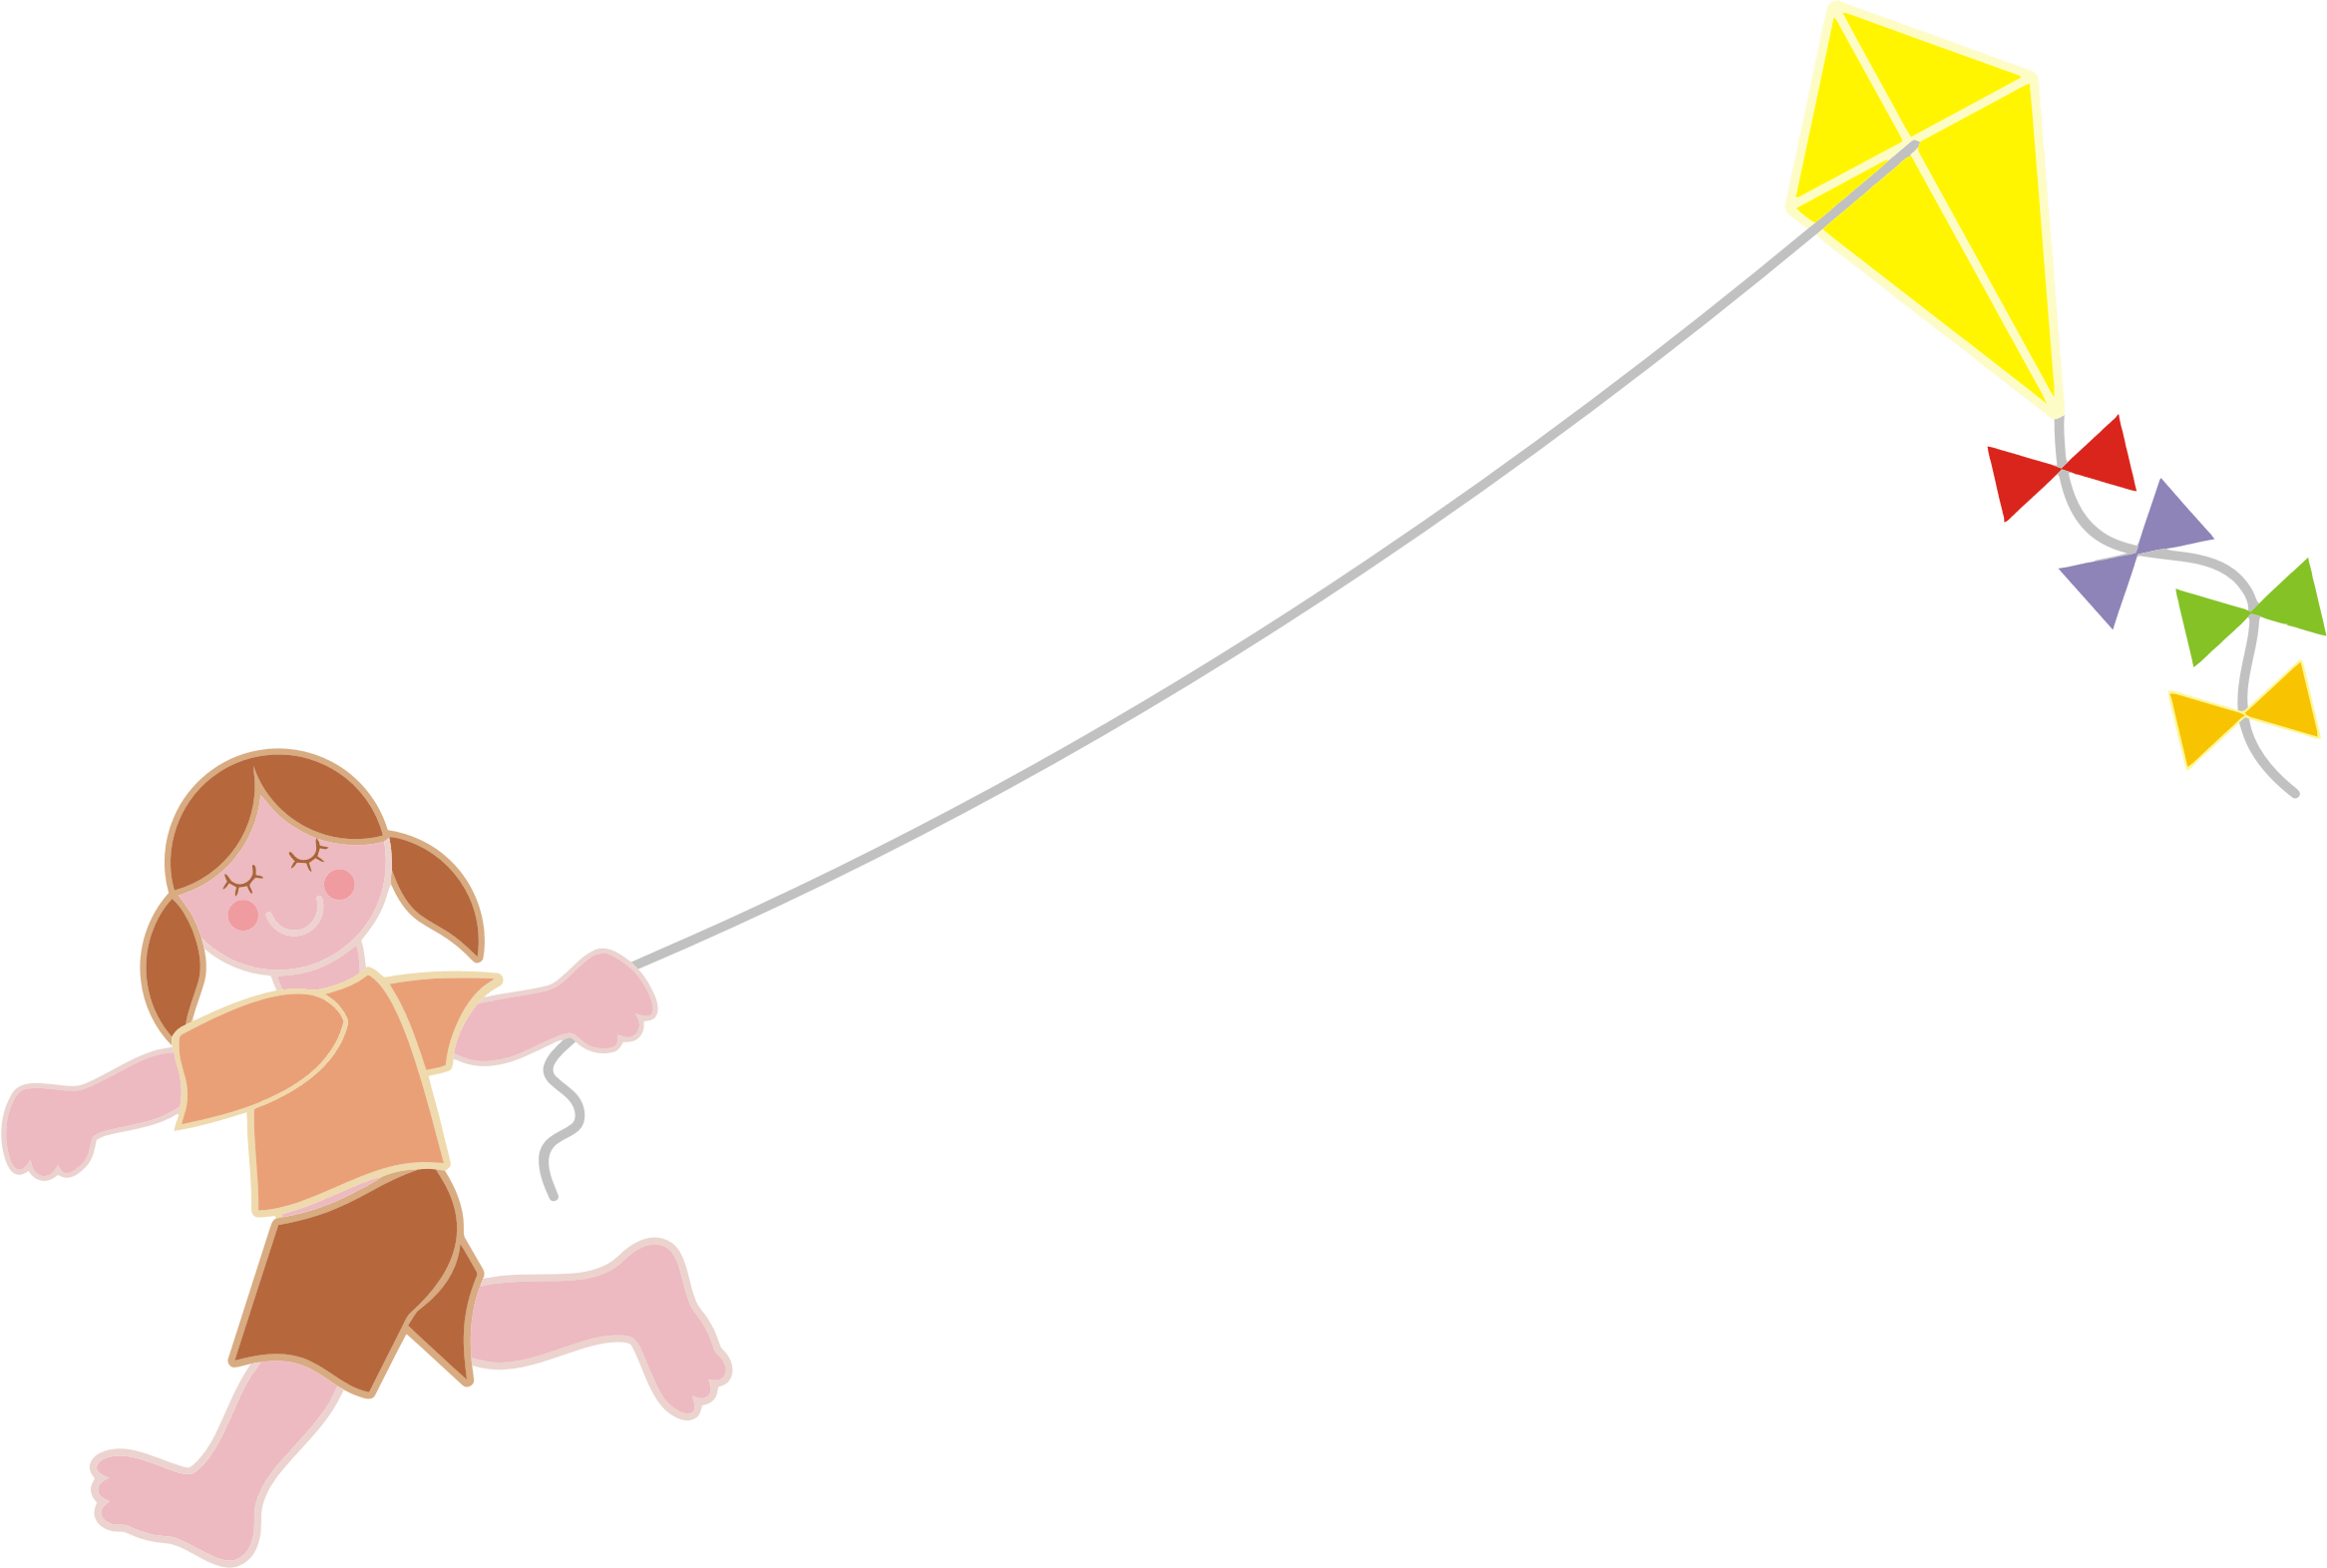 graphic transparent Flying kite clipart. June bonkers away see